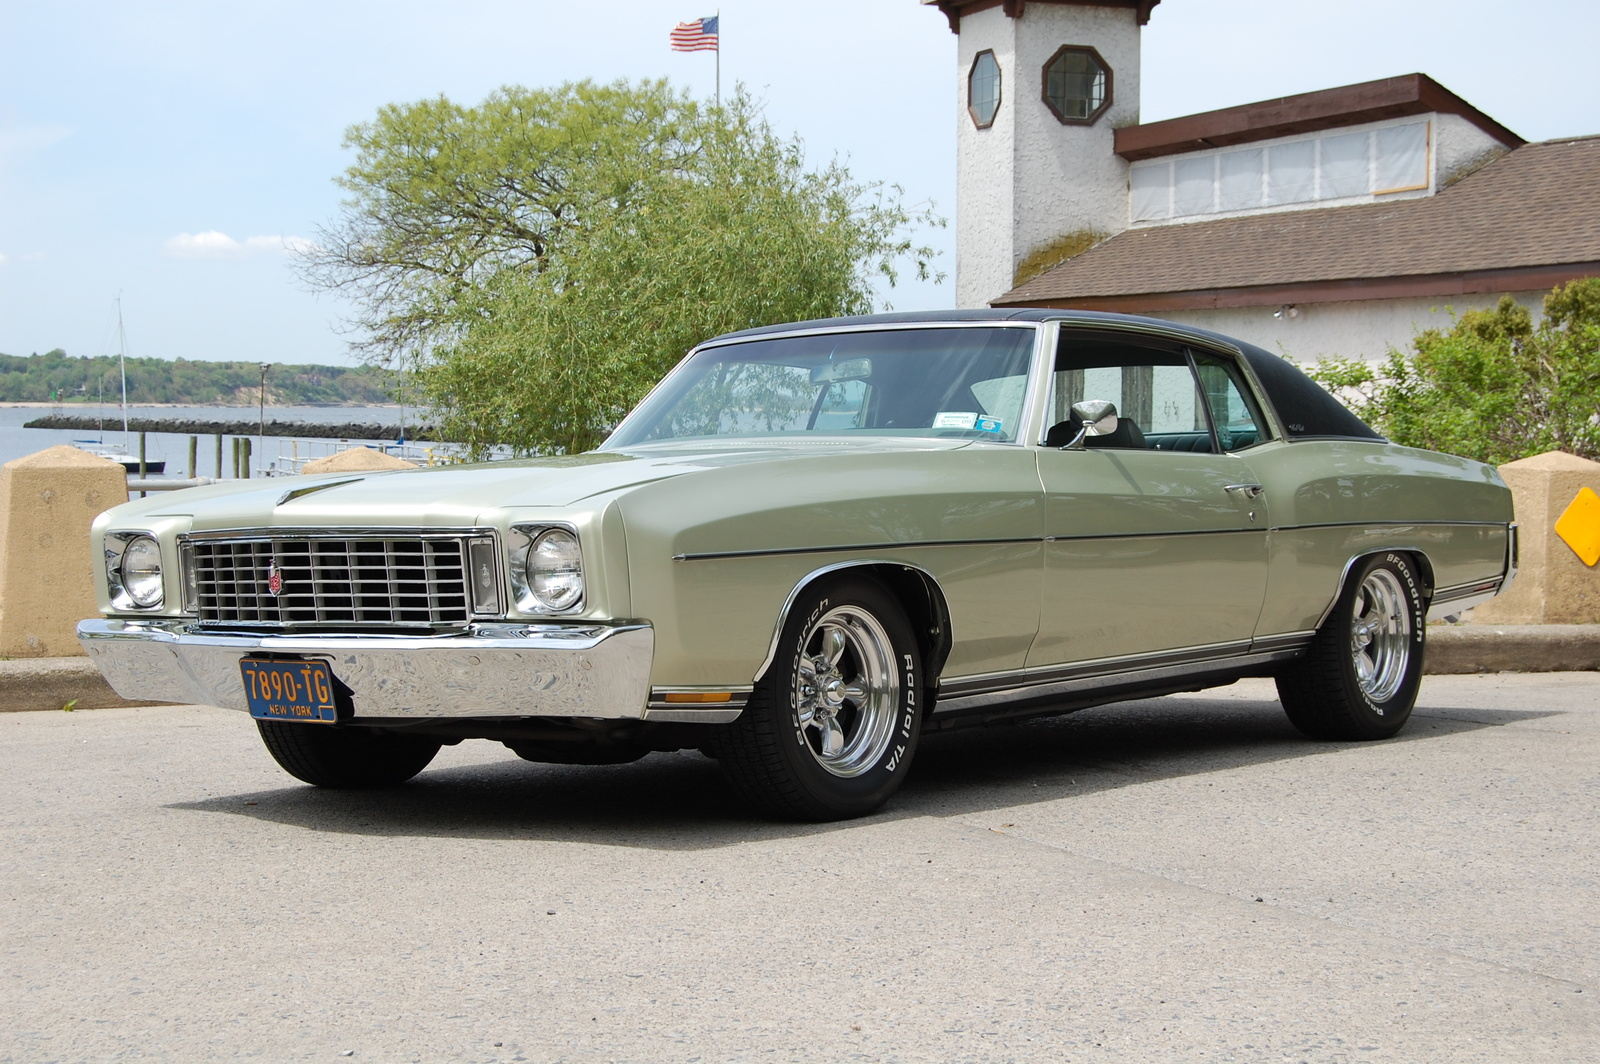 Chevrolet Monte Carlo - Pictures, posters, news and videos on your ...